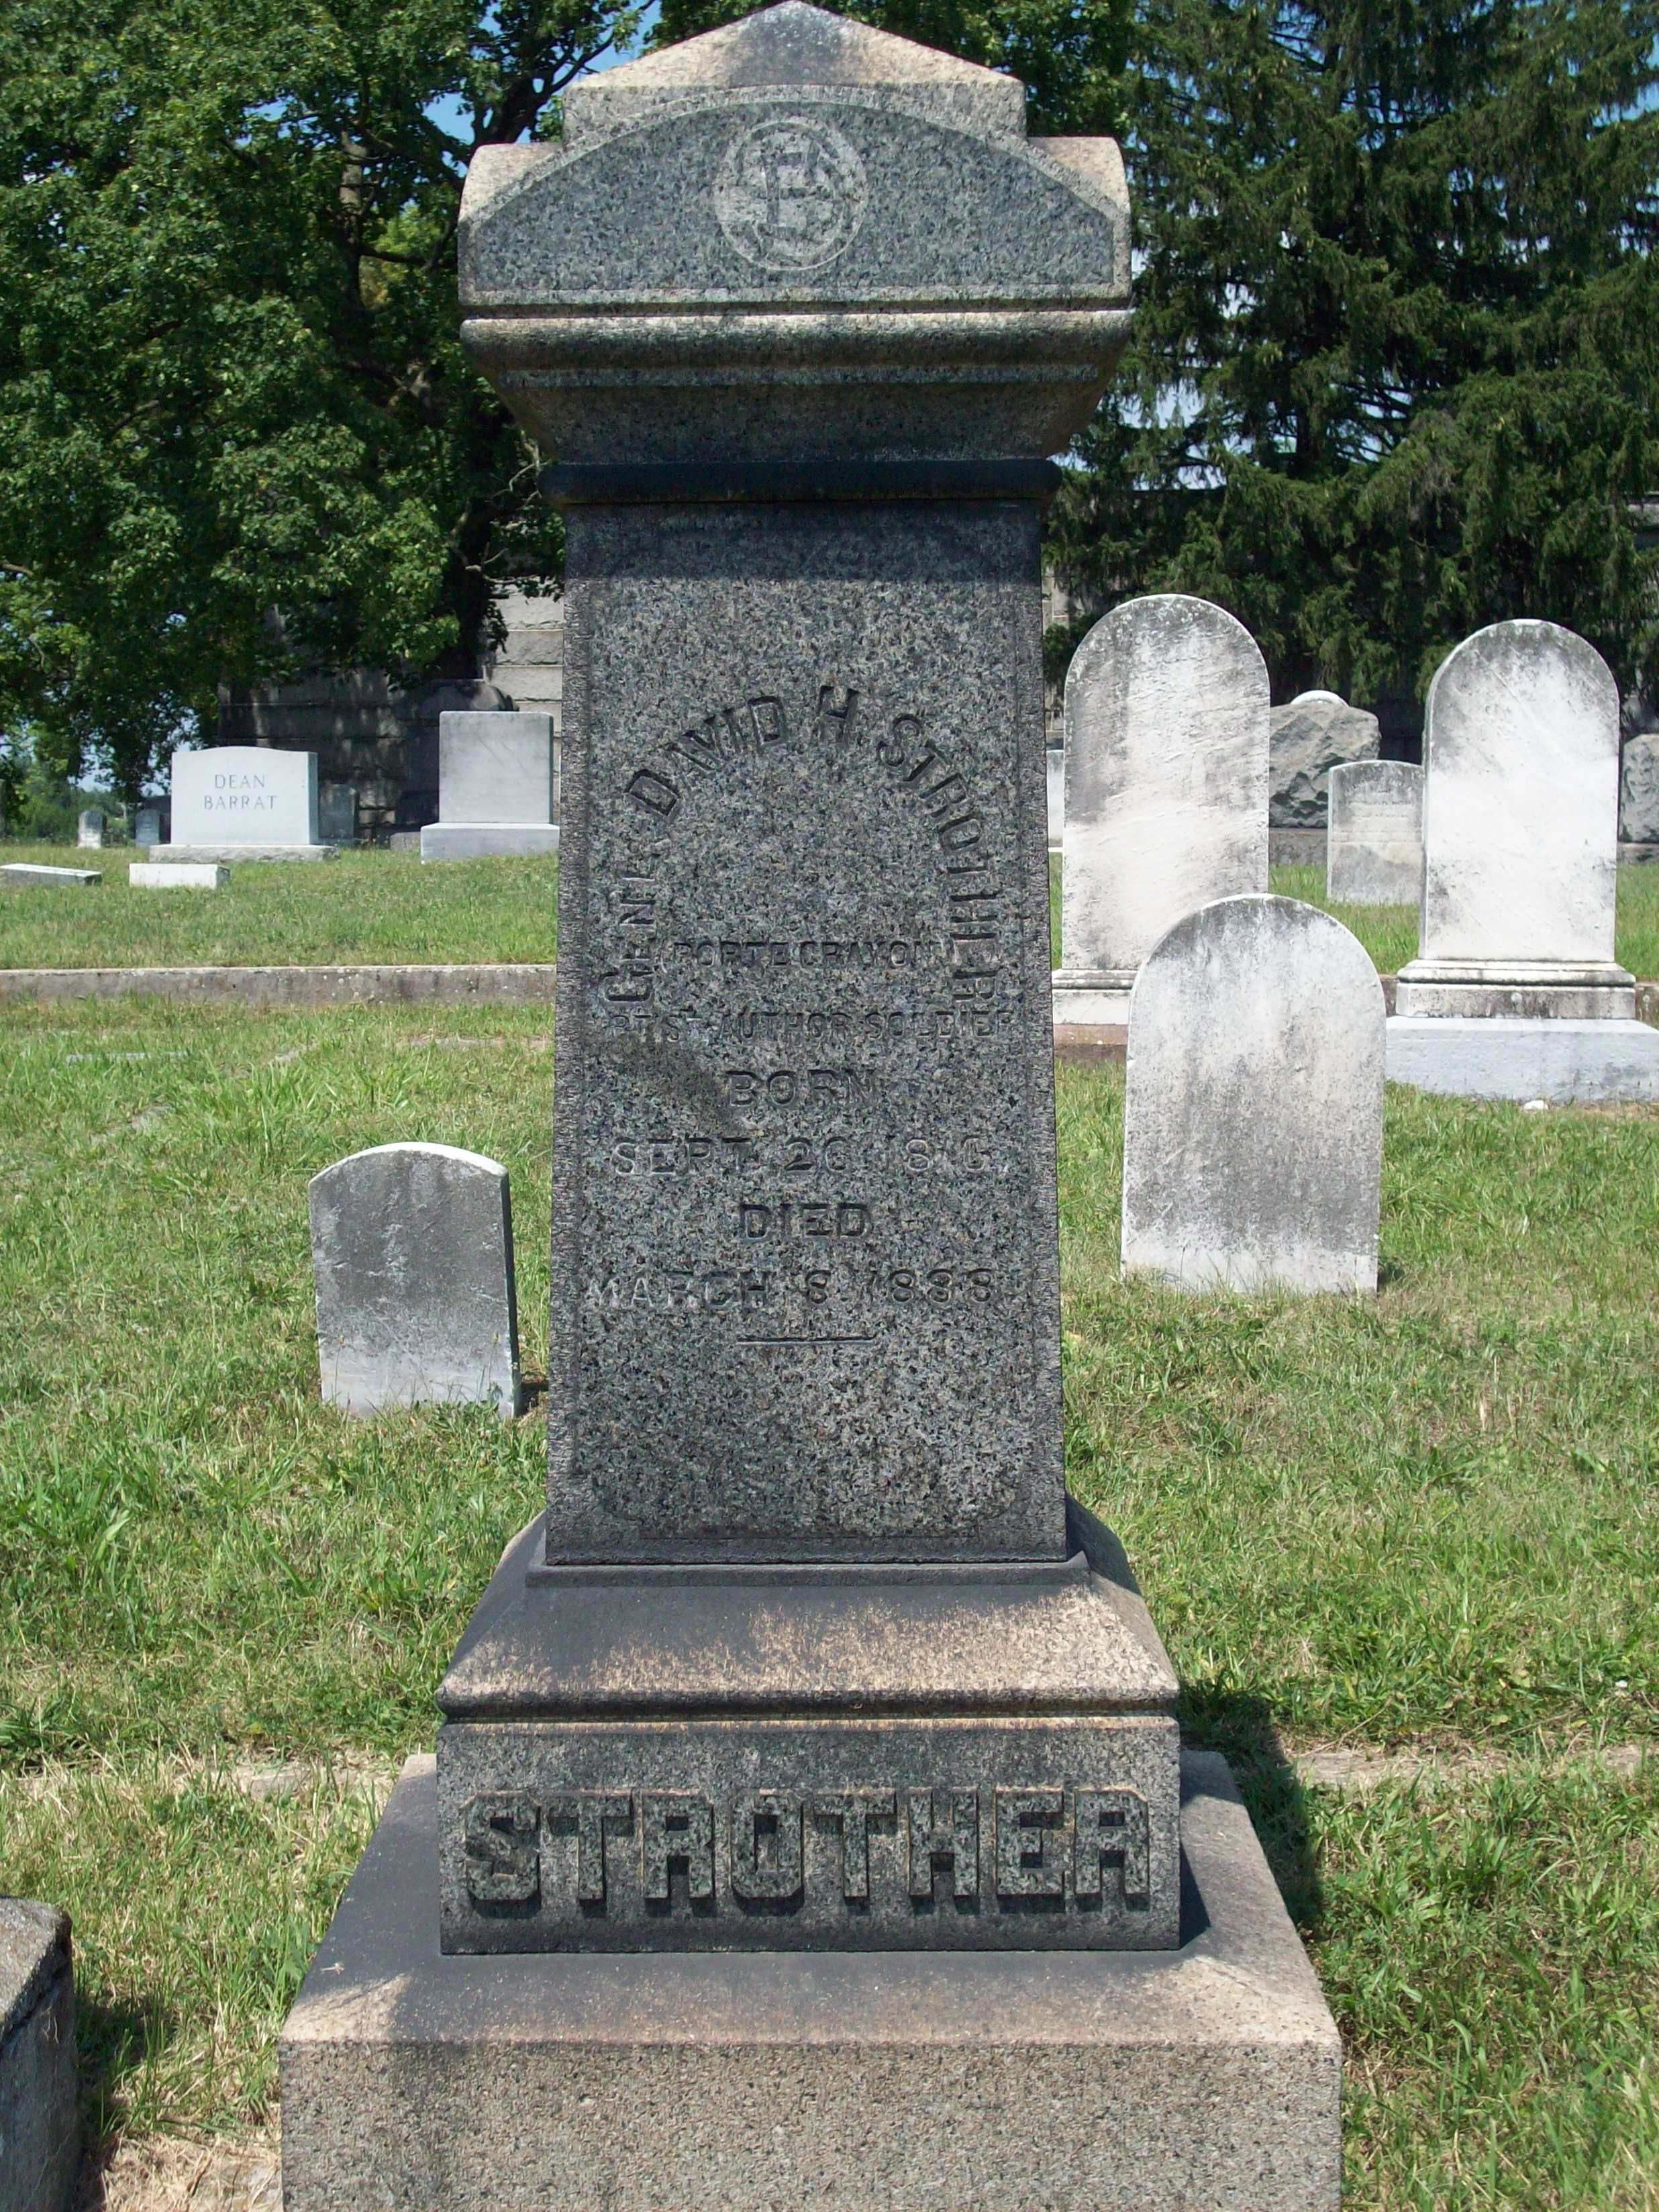 Gravesite of David Hunter Strother at Green Hill cemetery, Martinsburg, West Virginia.